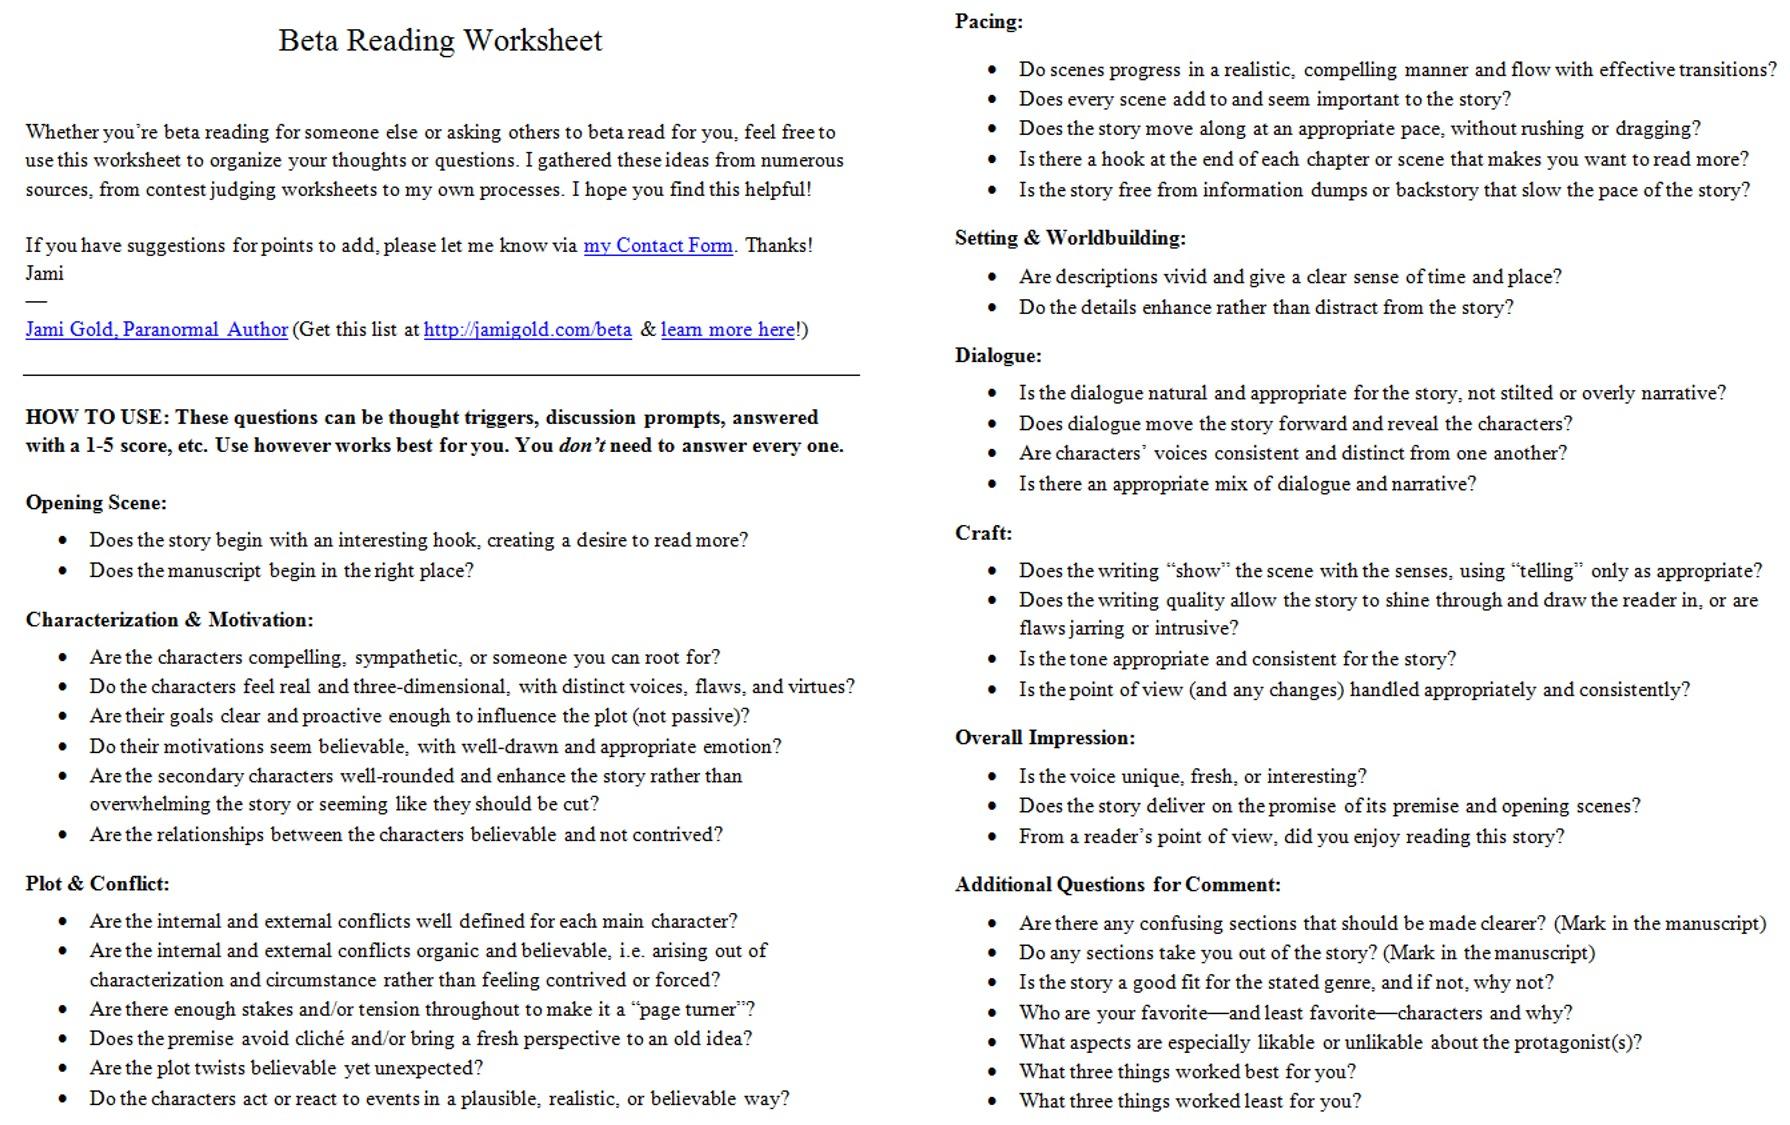 Weirdmailus  Stunning Worksheets For Writers  Jami Gold Paranormal Author With Great Screen Shot Of The Twopage Beta Reading Worksheet With Archaic Year  Comprehension Worksheets Also Maths For Year  Worksheets In Addition Handwriting Worksheets Year  And Classifying And Categorizing Worksheets As Well As Multiplication Worksheets Grade  Free Additionally Moon Phases Worksheets For Kids From Jamigoldcom With Weirdmailus  Great Worksheets For Writers  Jami Gold Paranormal Author With Archaic Screen Shot Of The Twopage Beta Reading Worksheet And Stunning Year  Comprehension Worksheets Also Maths For Year  Worksheets In Addition Handwriting Worksheets Year  From Jamigoldcom